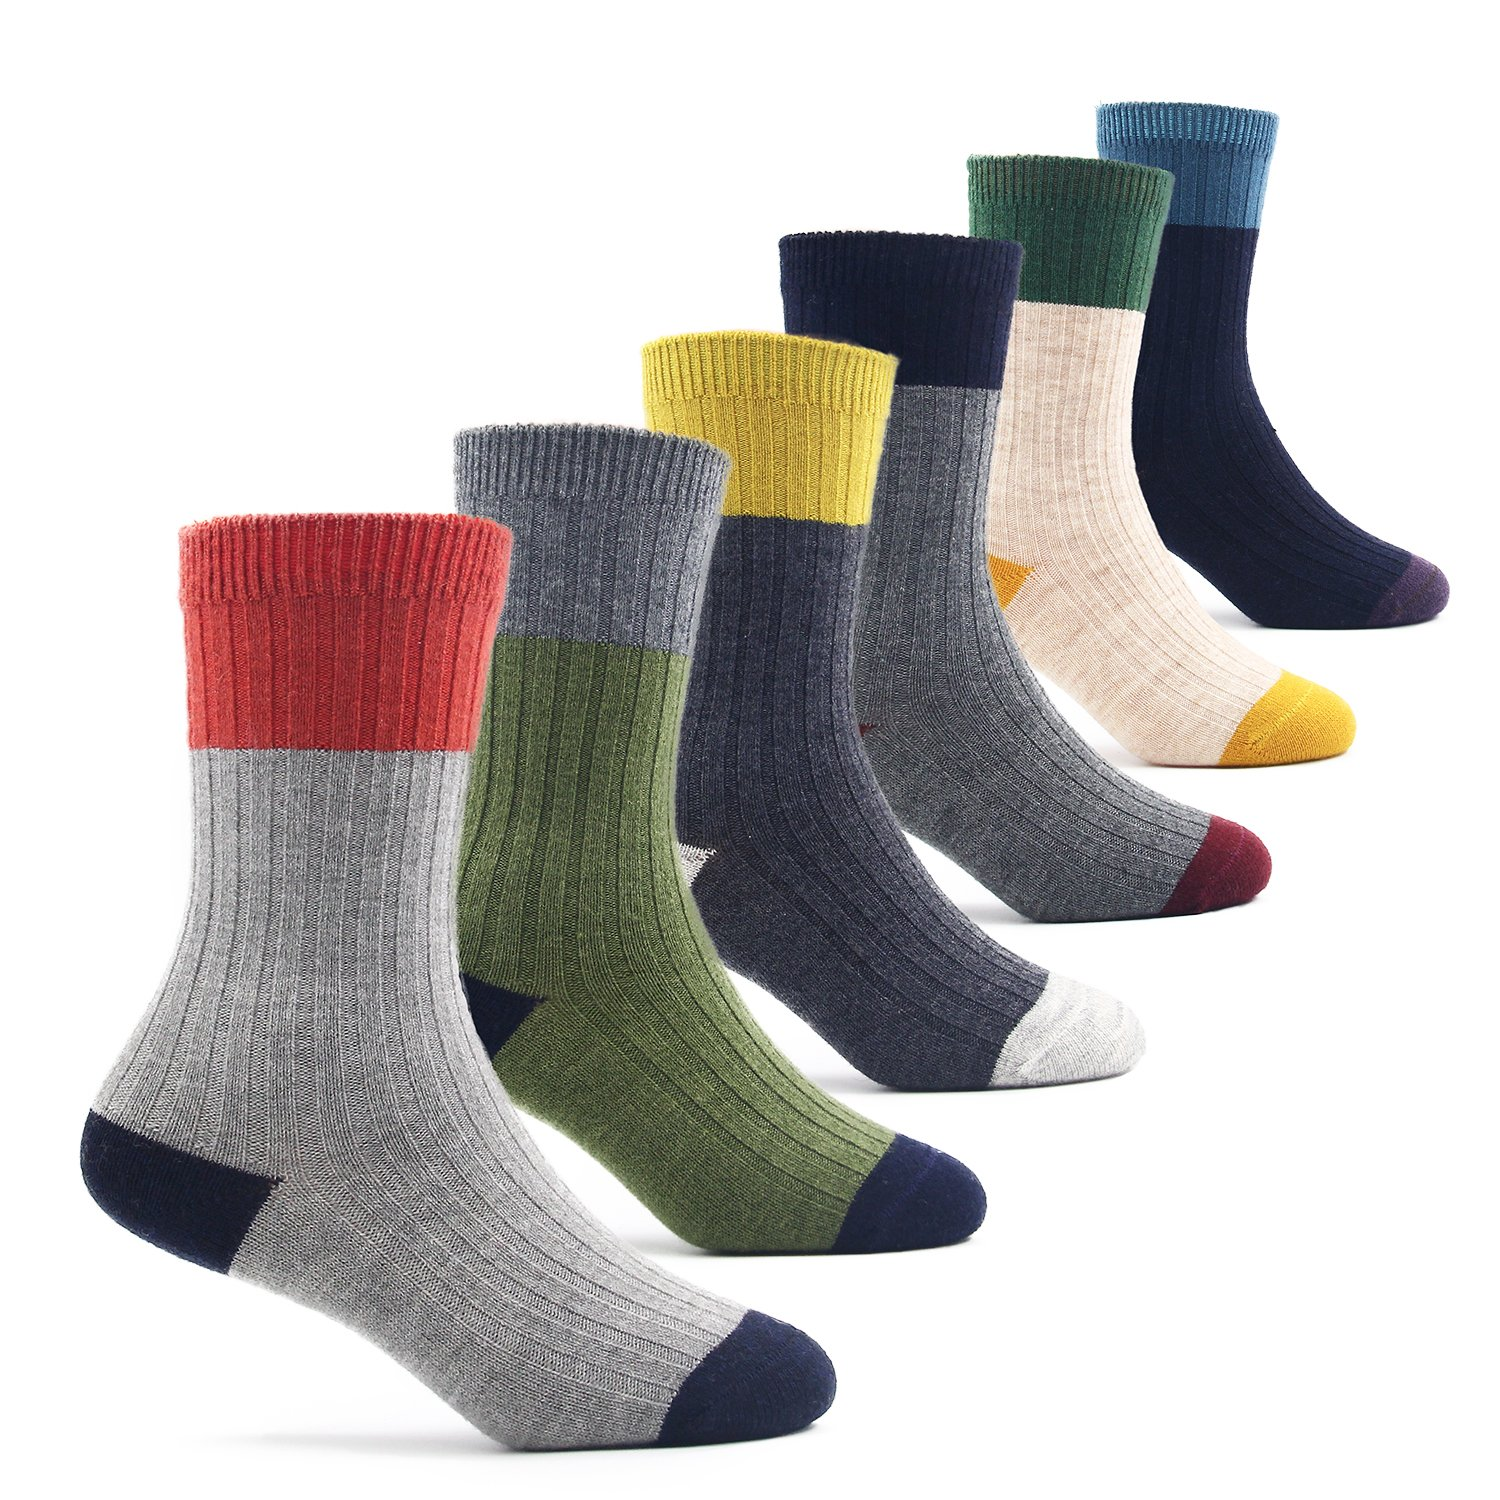 Boys Thick Wool Socks Kids Winter Seamless Socks 6 Pack